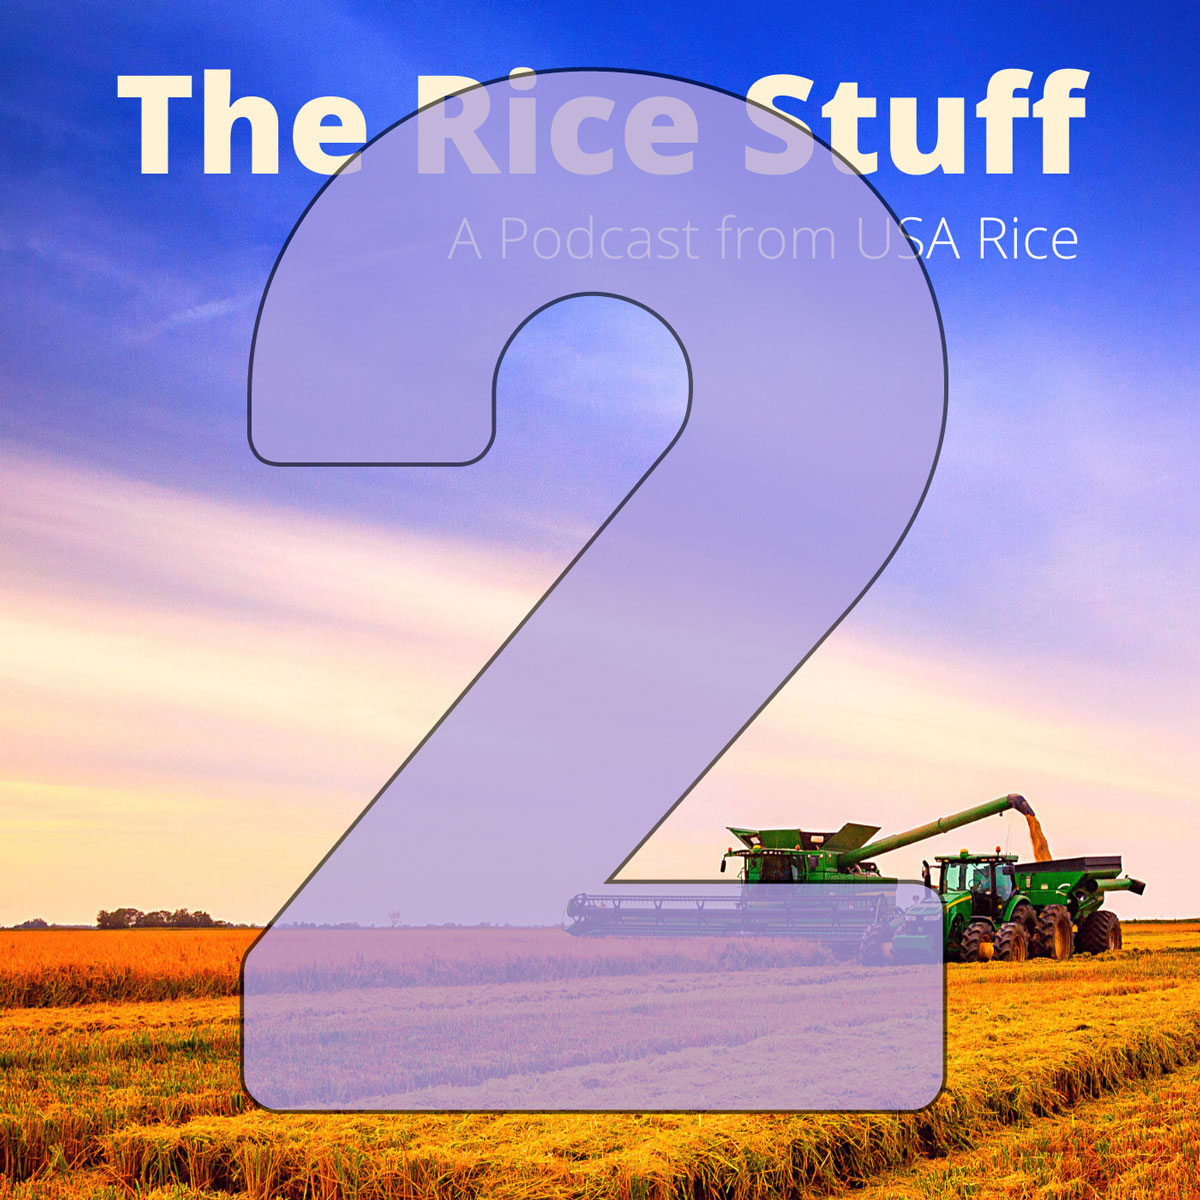 Combine and rice cart in background, number 2 superimposed over photo